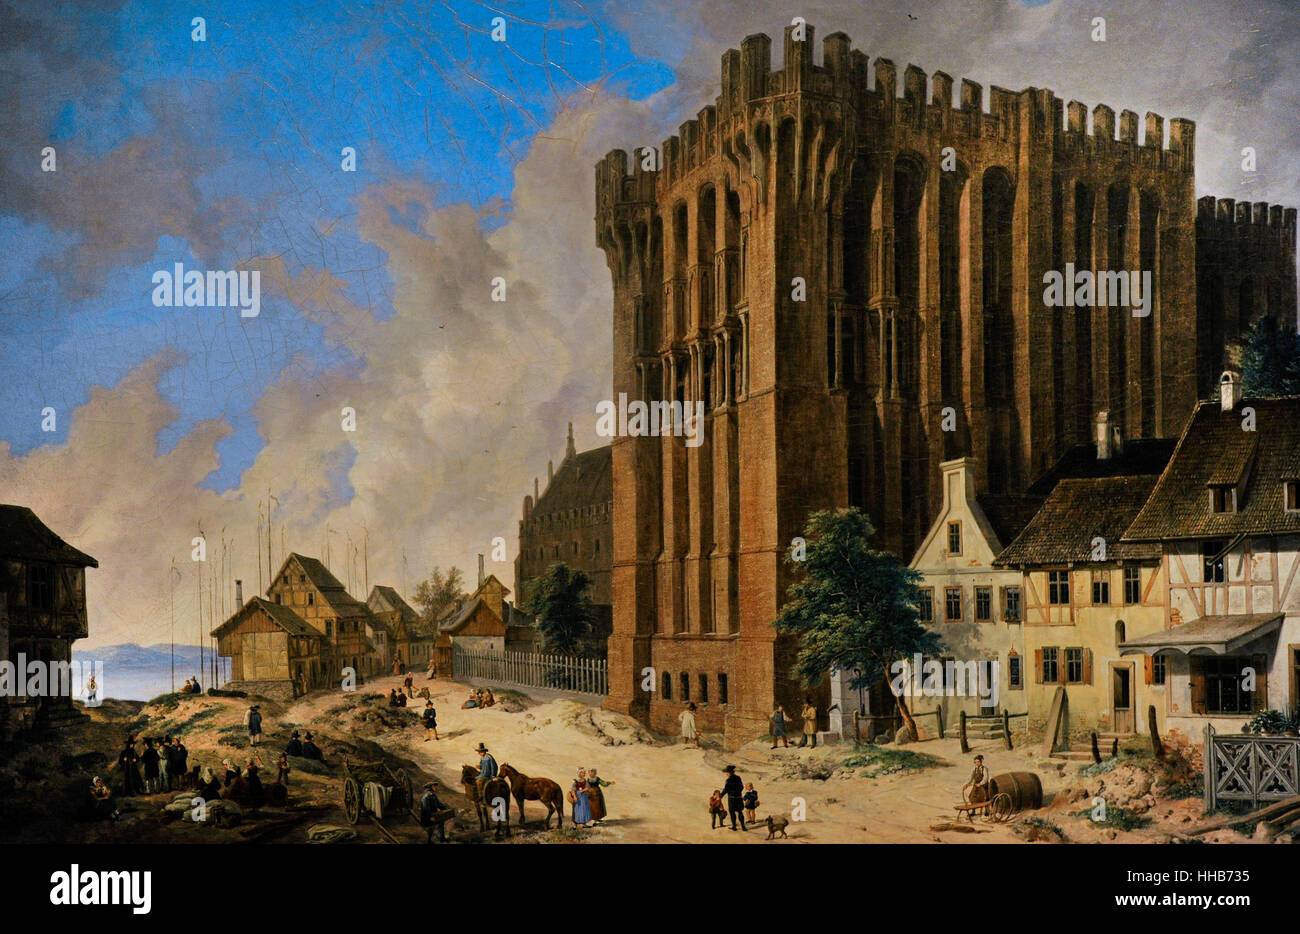 Domenico Quaglio The Younger(1787-1837). German painter. The Palace of the Grand Master in Malbork. Gdansk, 1834. - Stock Image